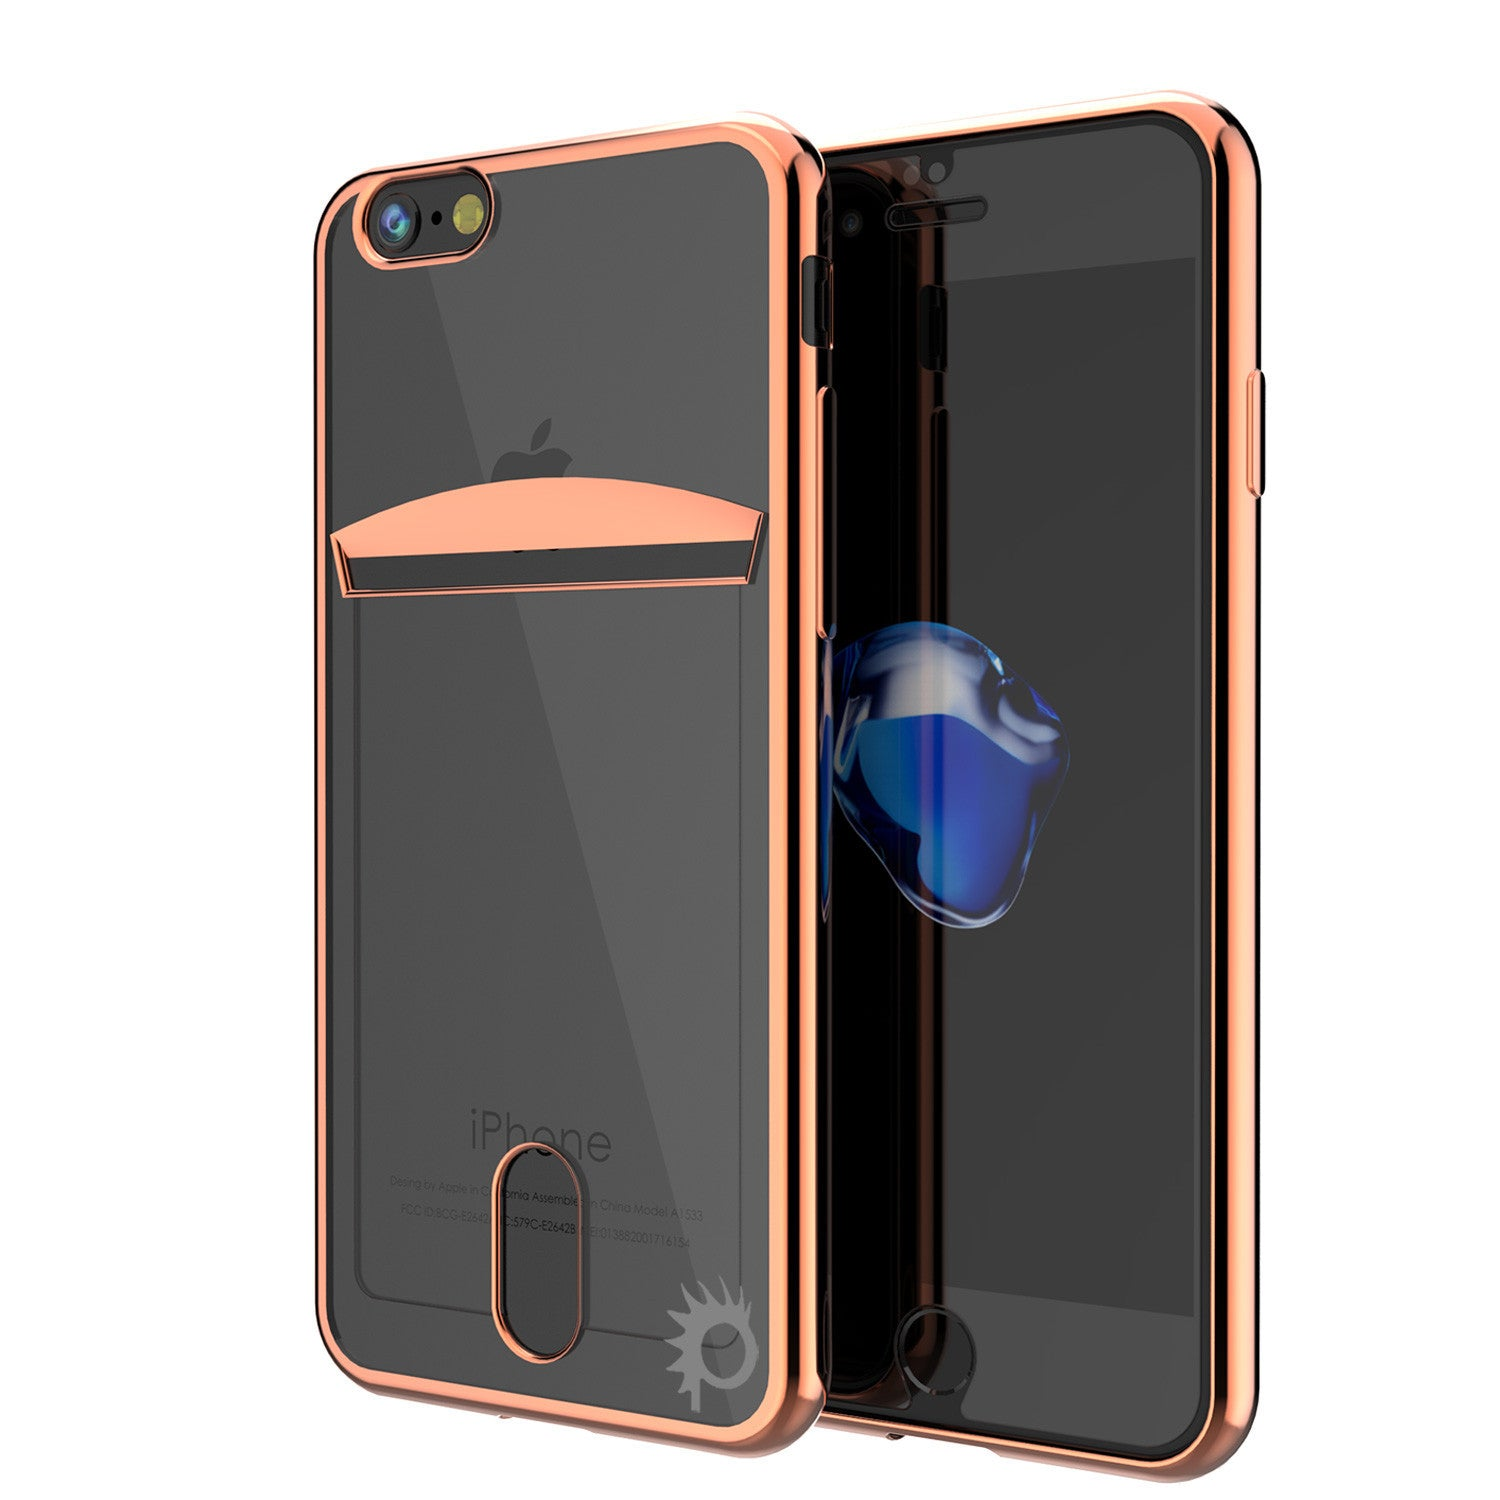 iPhone 7+ Plus Case, PUNKCASE® LUCID Rose Gold Series | Card Slot | SHIELD Screen Protector